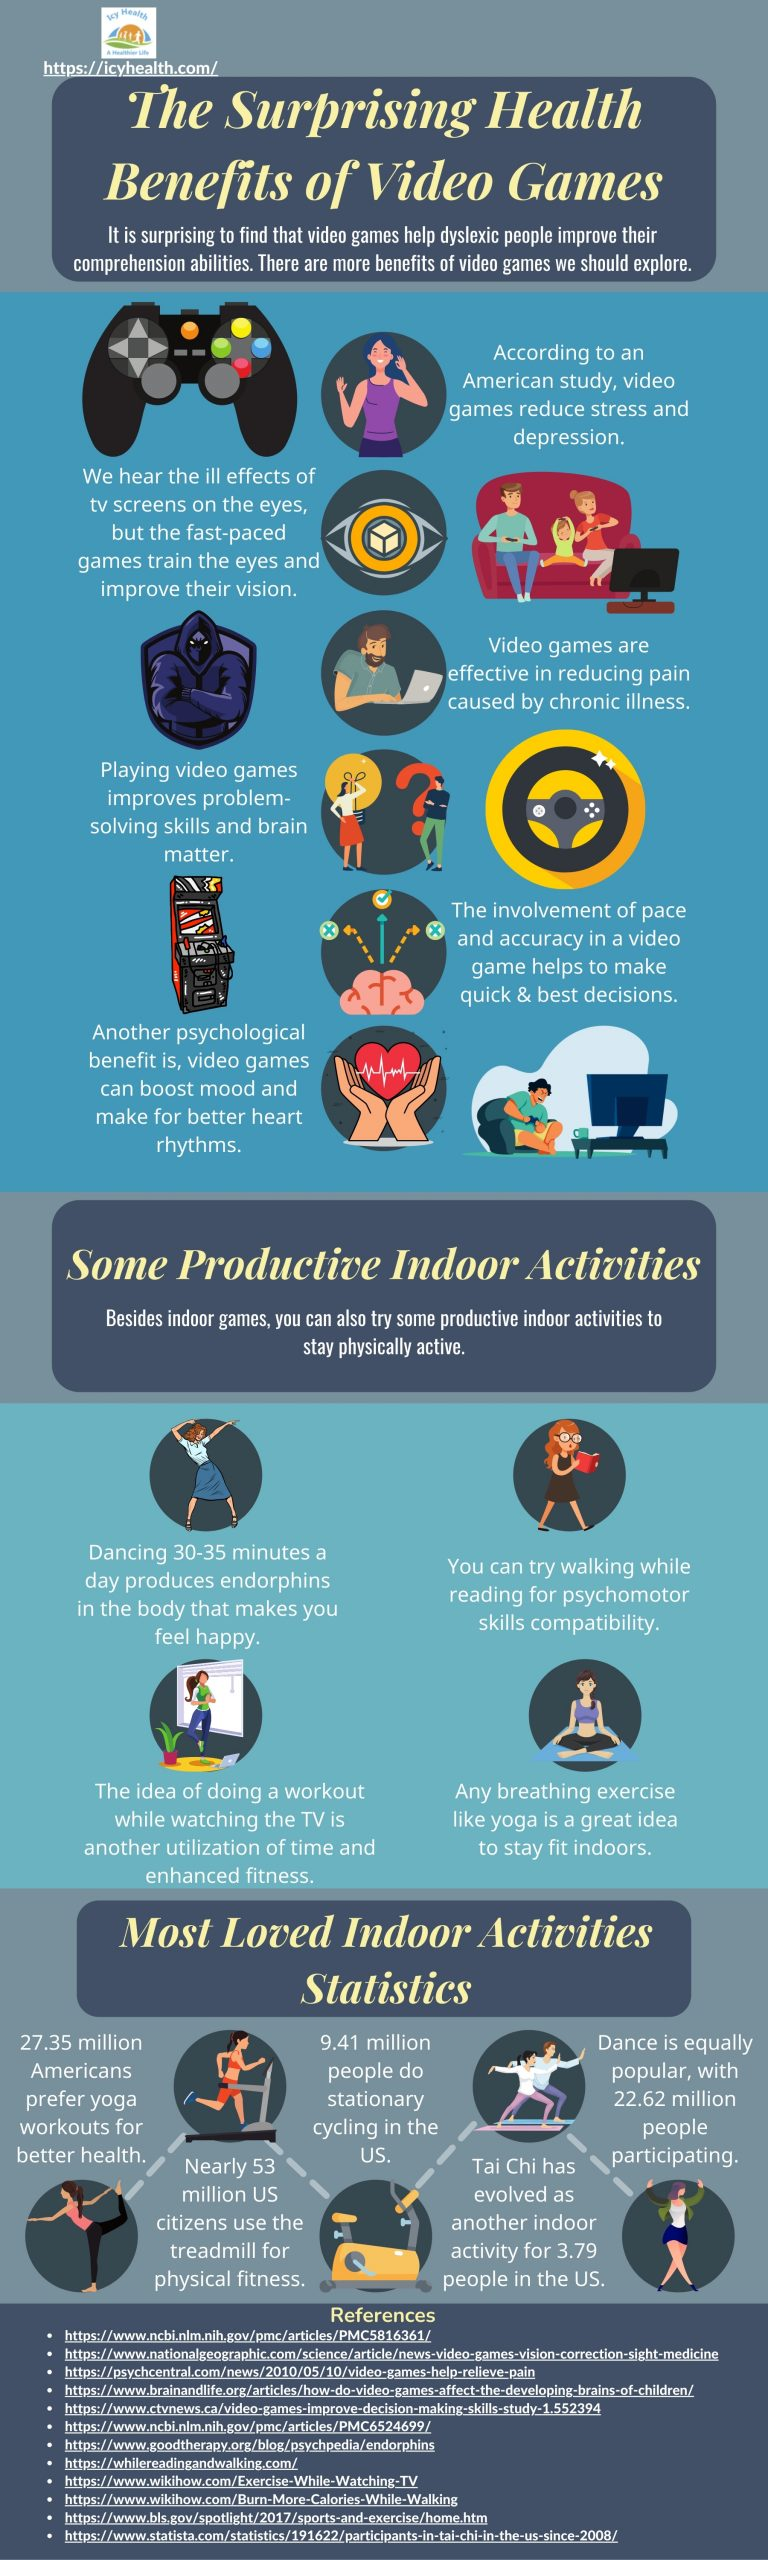 The Surprising Health Benefits of Video Games